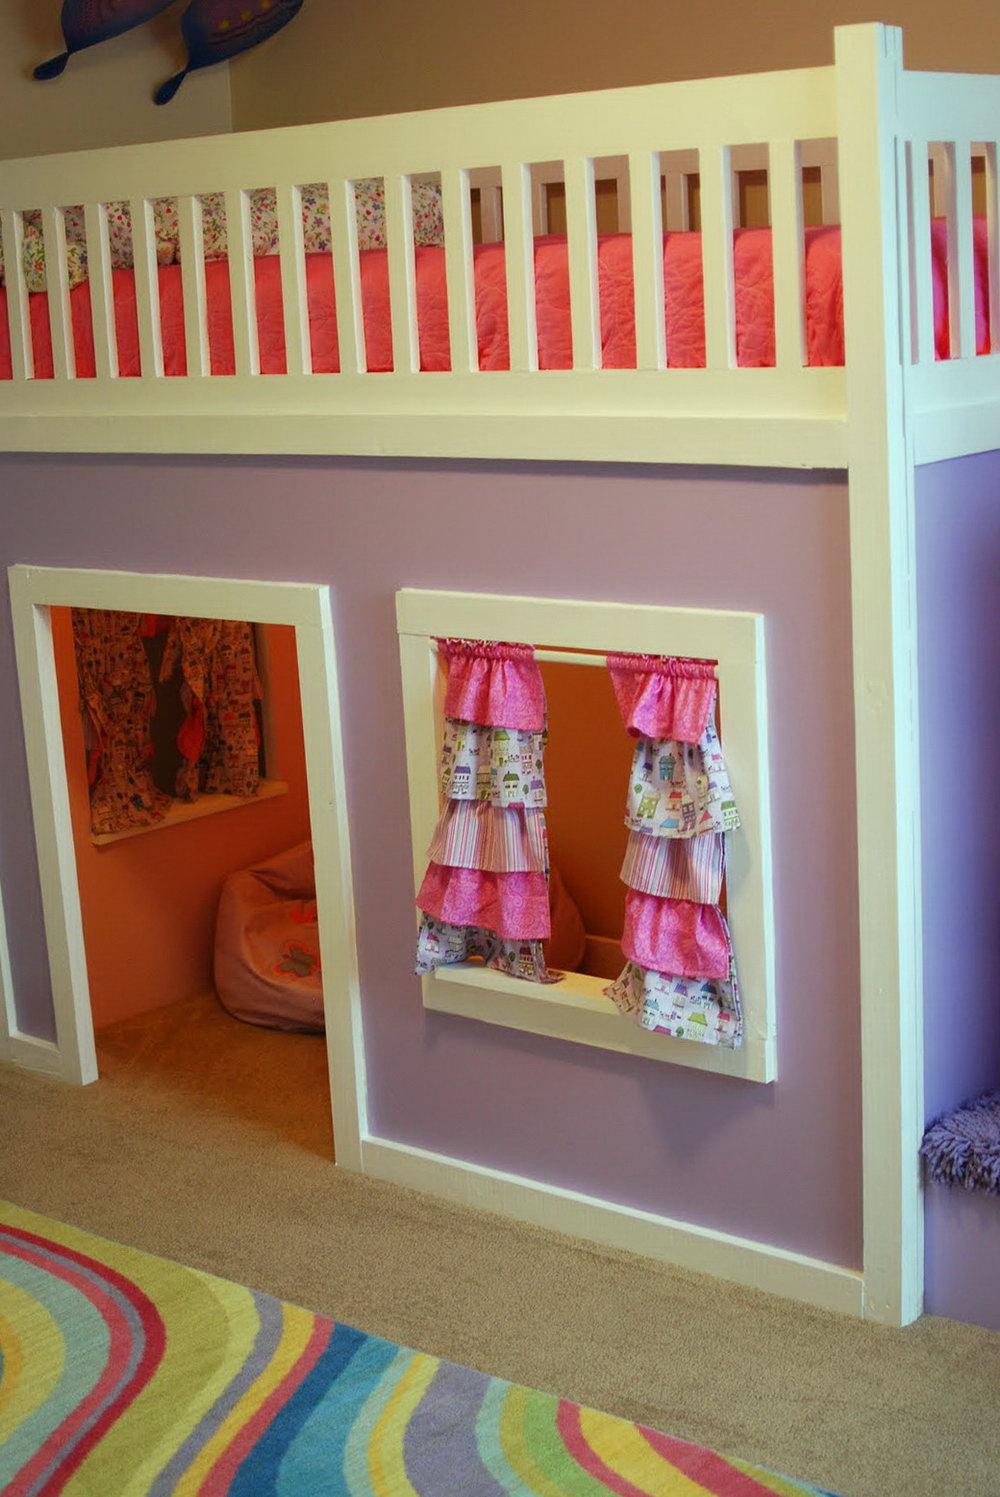 Bed Divider Design Ideas with Bunk Bed Curtains: Bunk Bed Curtains | Ikea Bed With Tent | Bunk Beds Tent